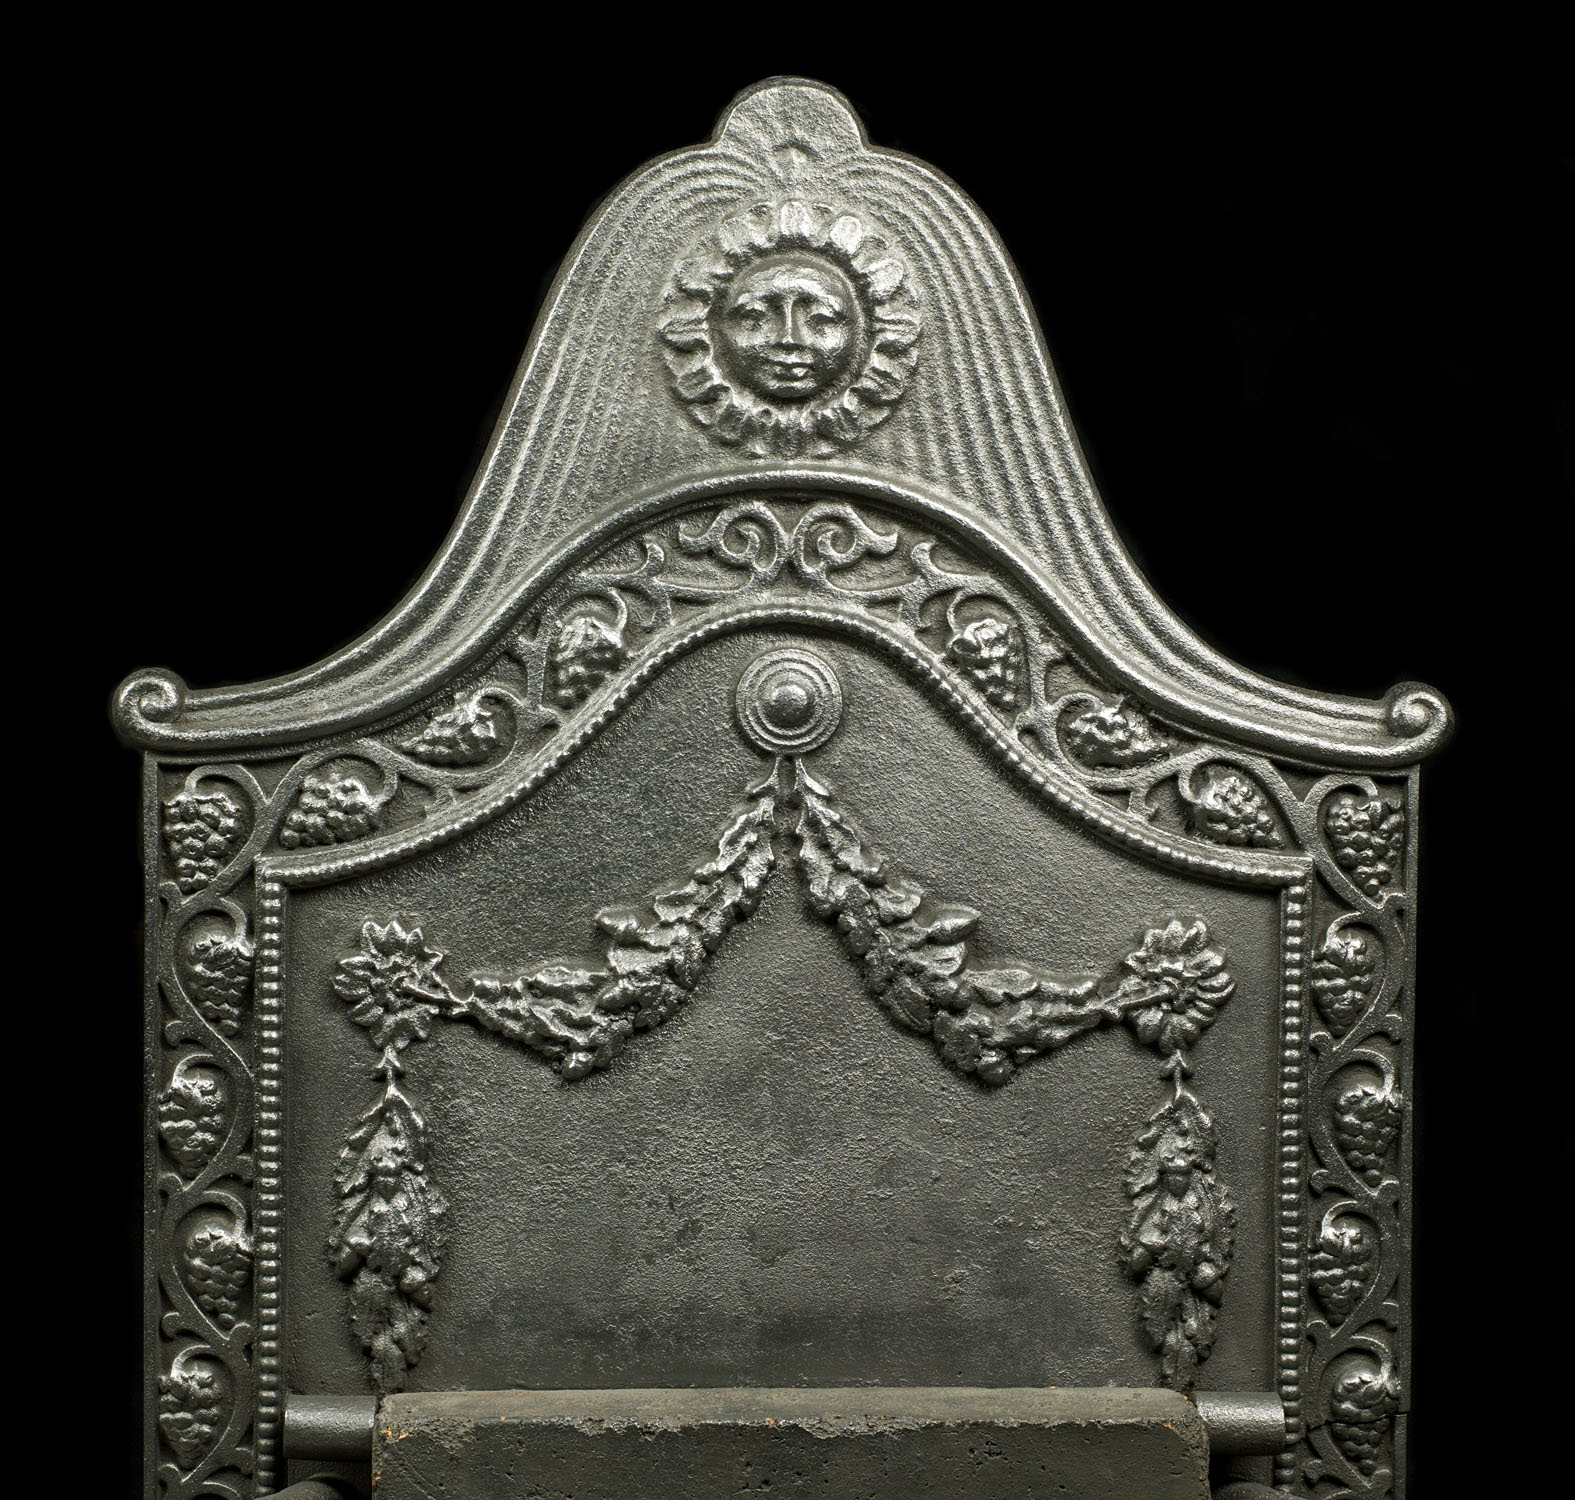 A large 19th century antique iron and brass firegrate